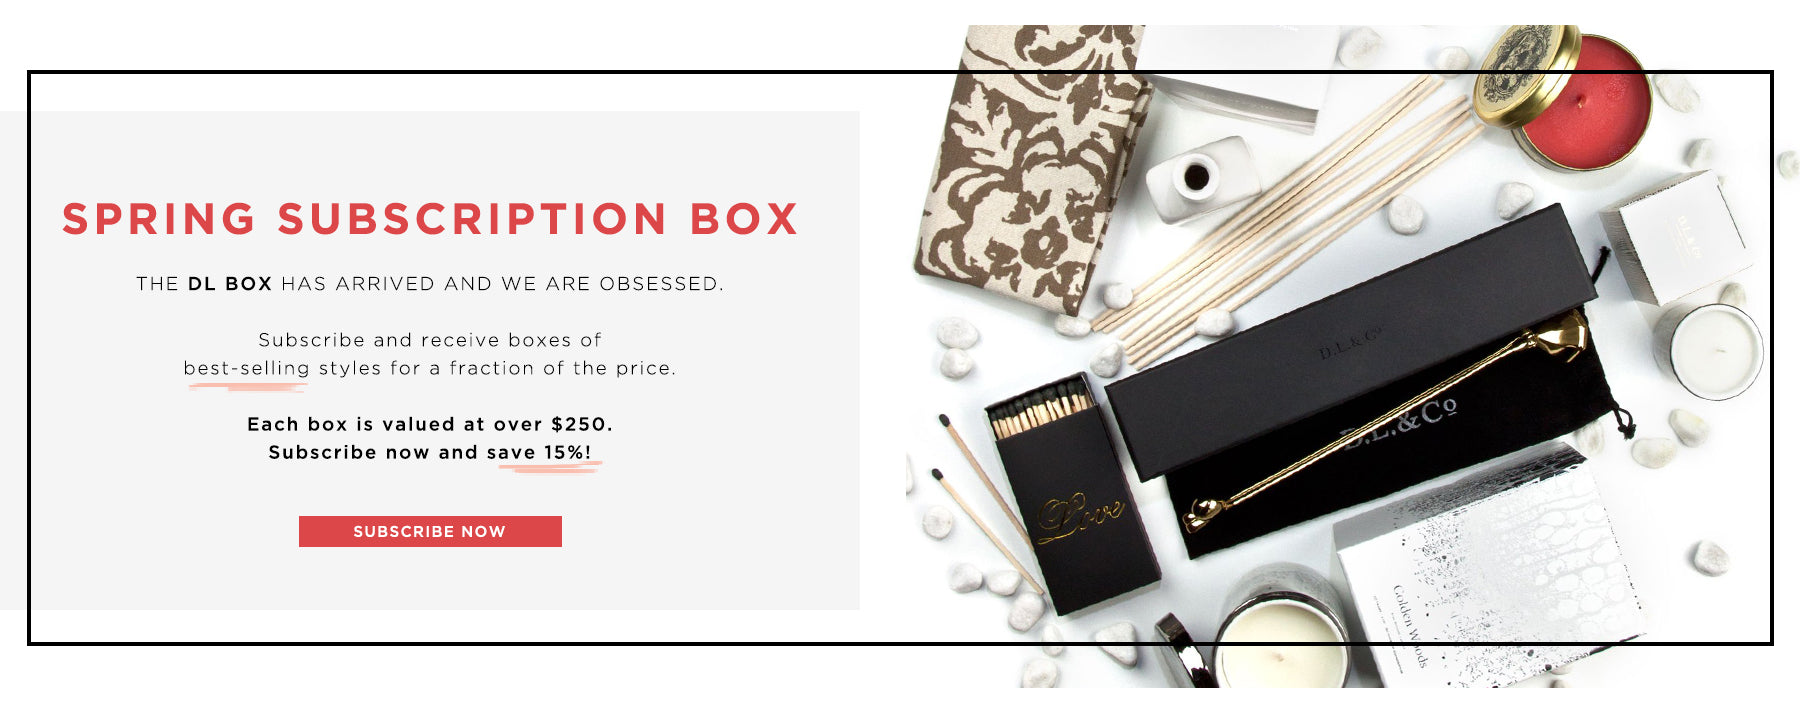 Subscription Box: The DL Box has arrived - Only $99 for over $250 worth of luxe home decor items. Subscribe Now.